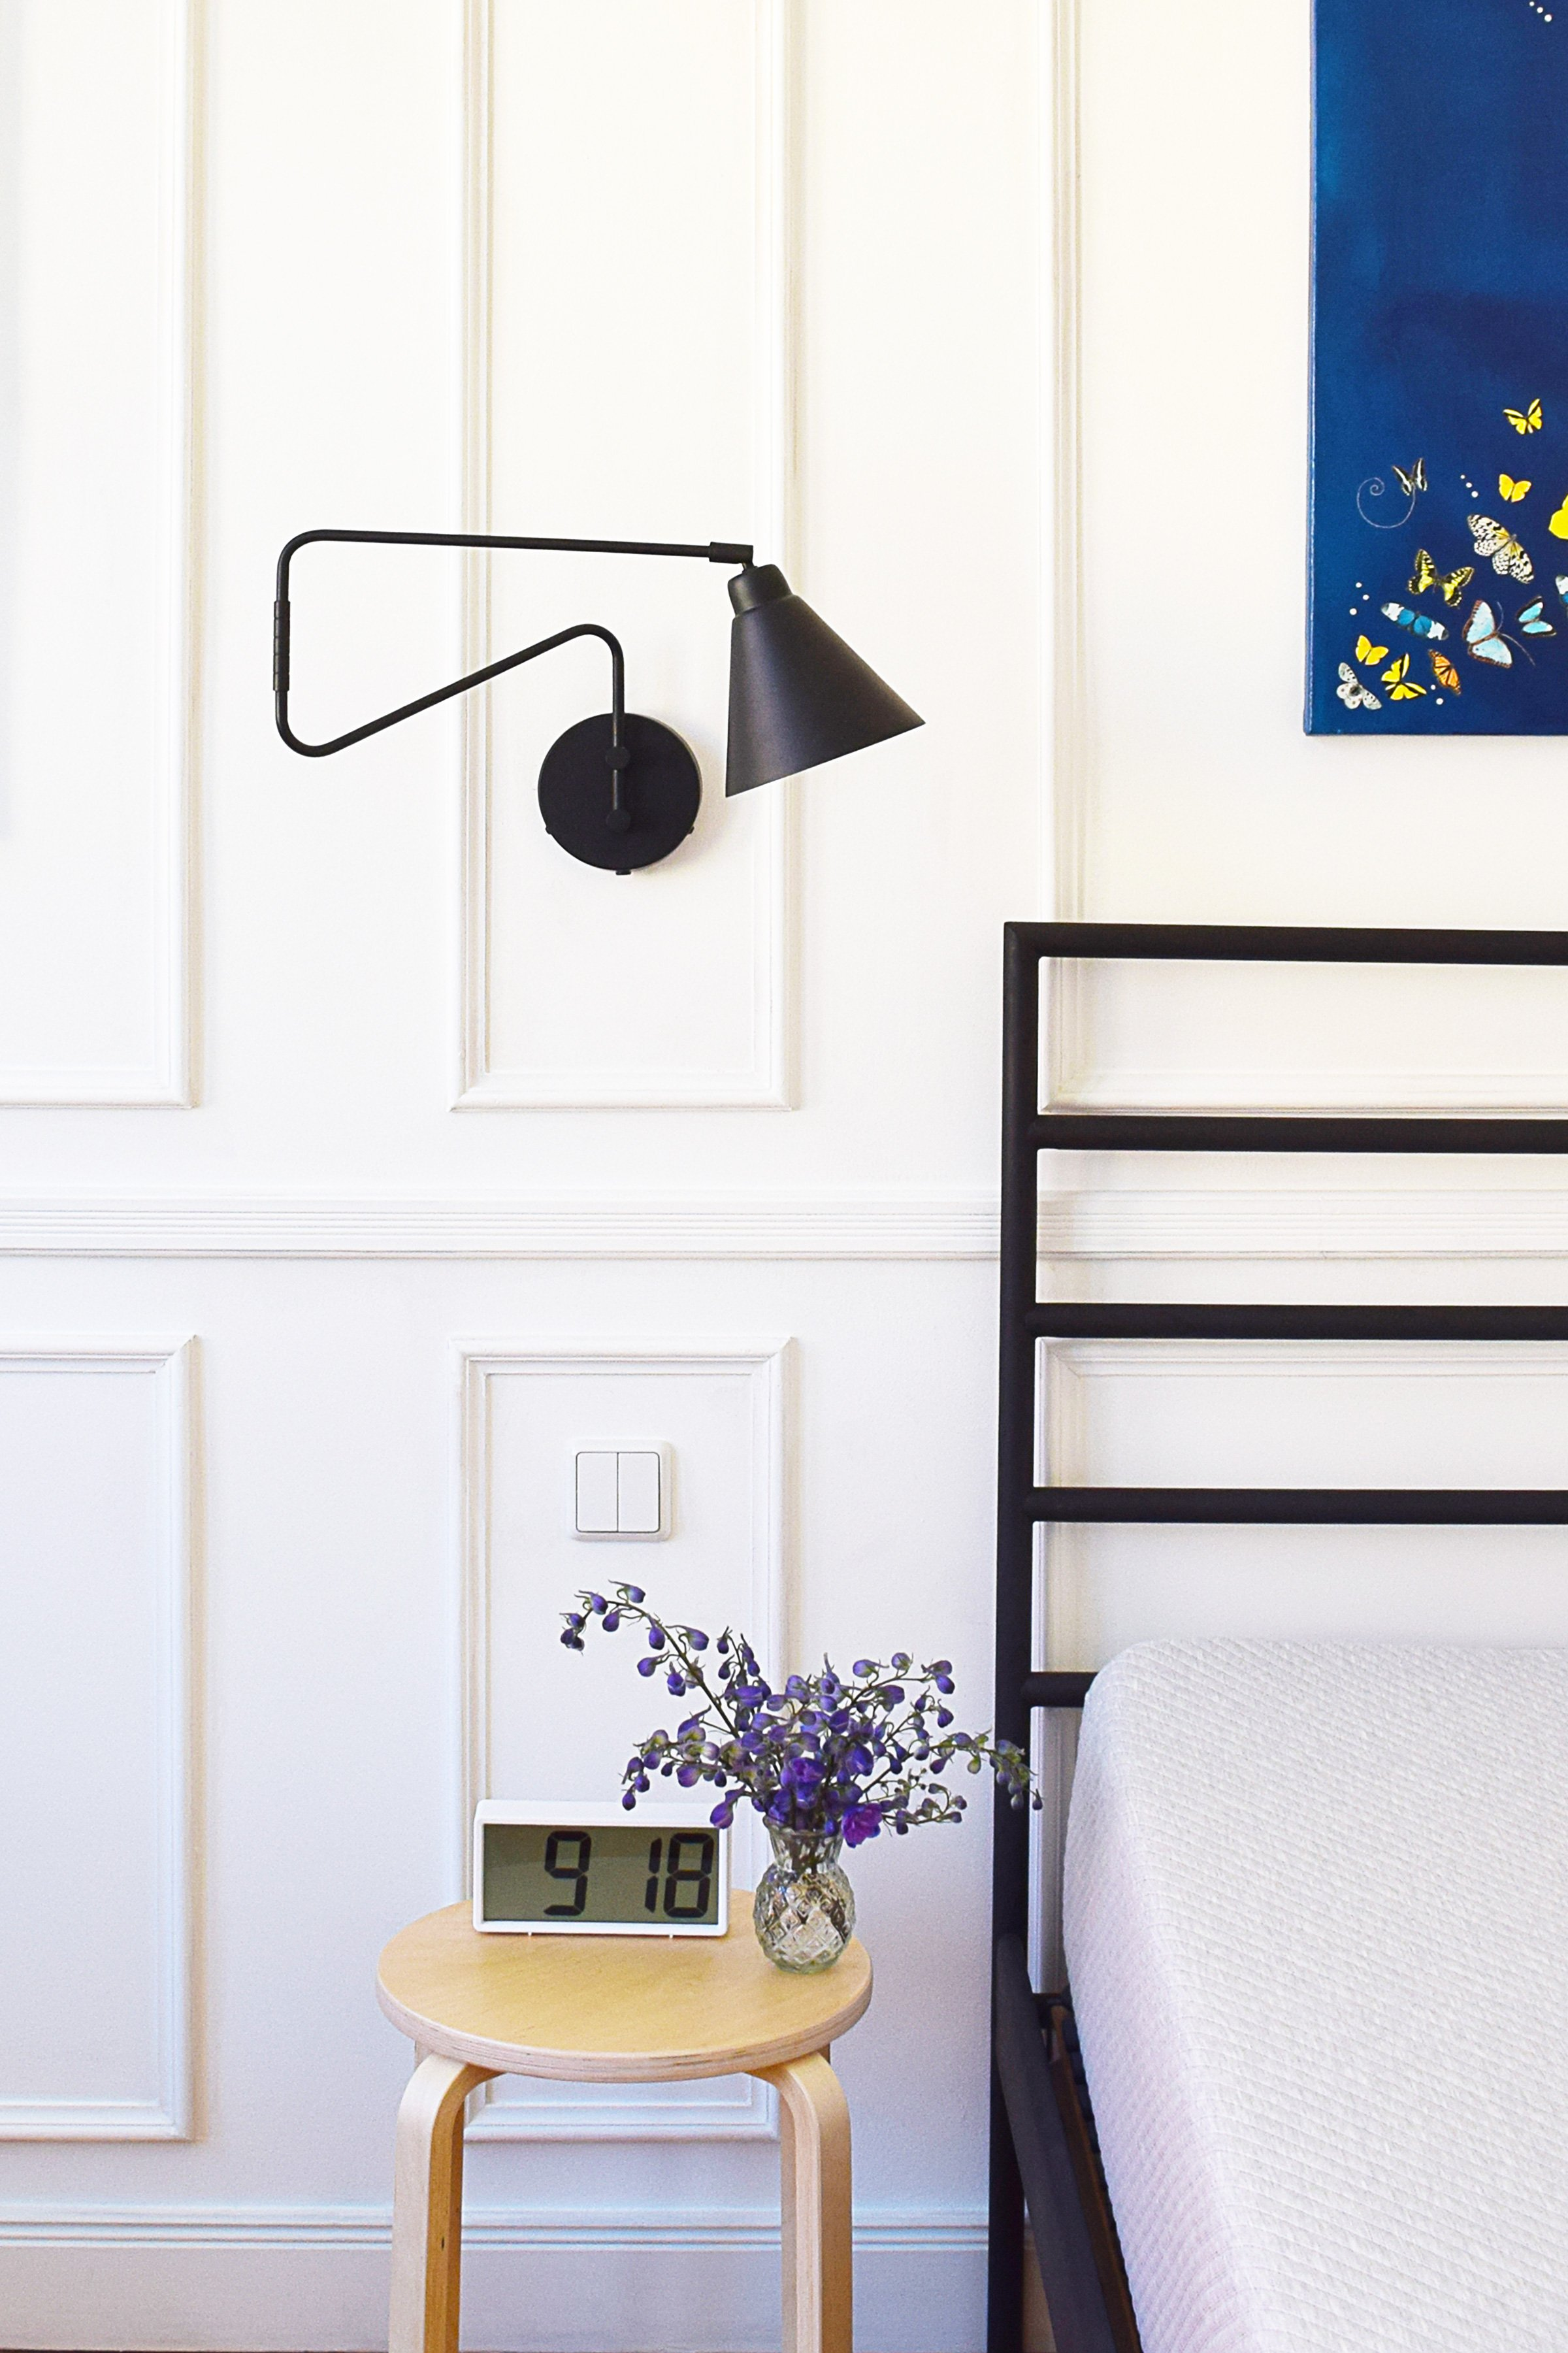 Bedroom Accessories With Hurn & Hurn | Little House On The Corner